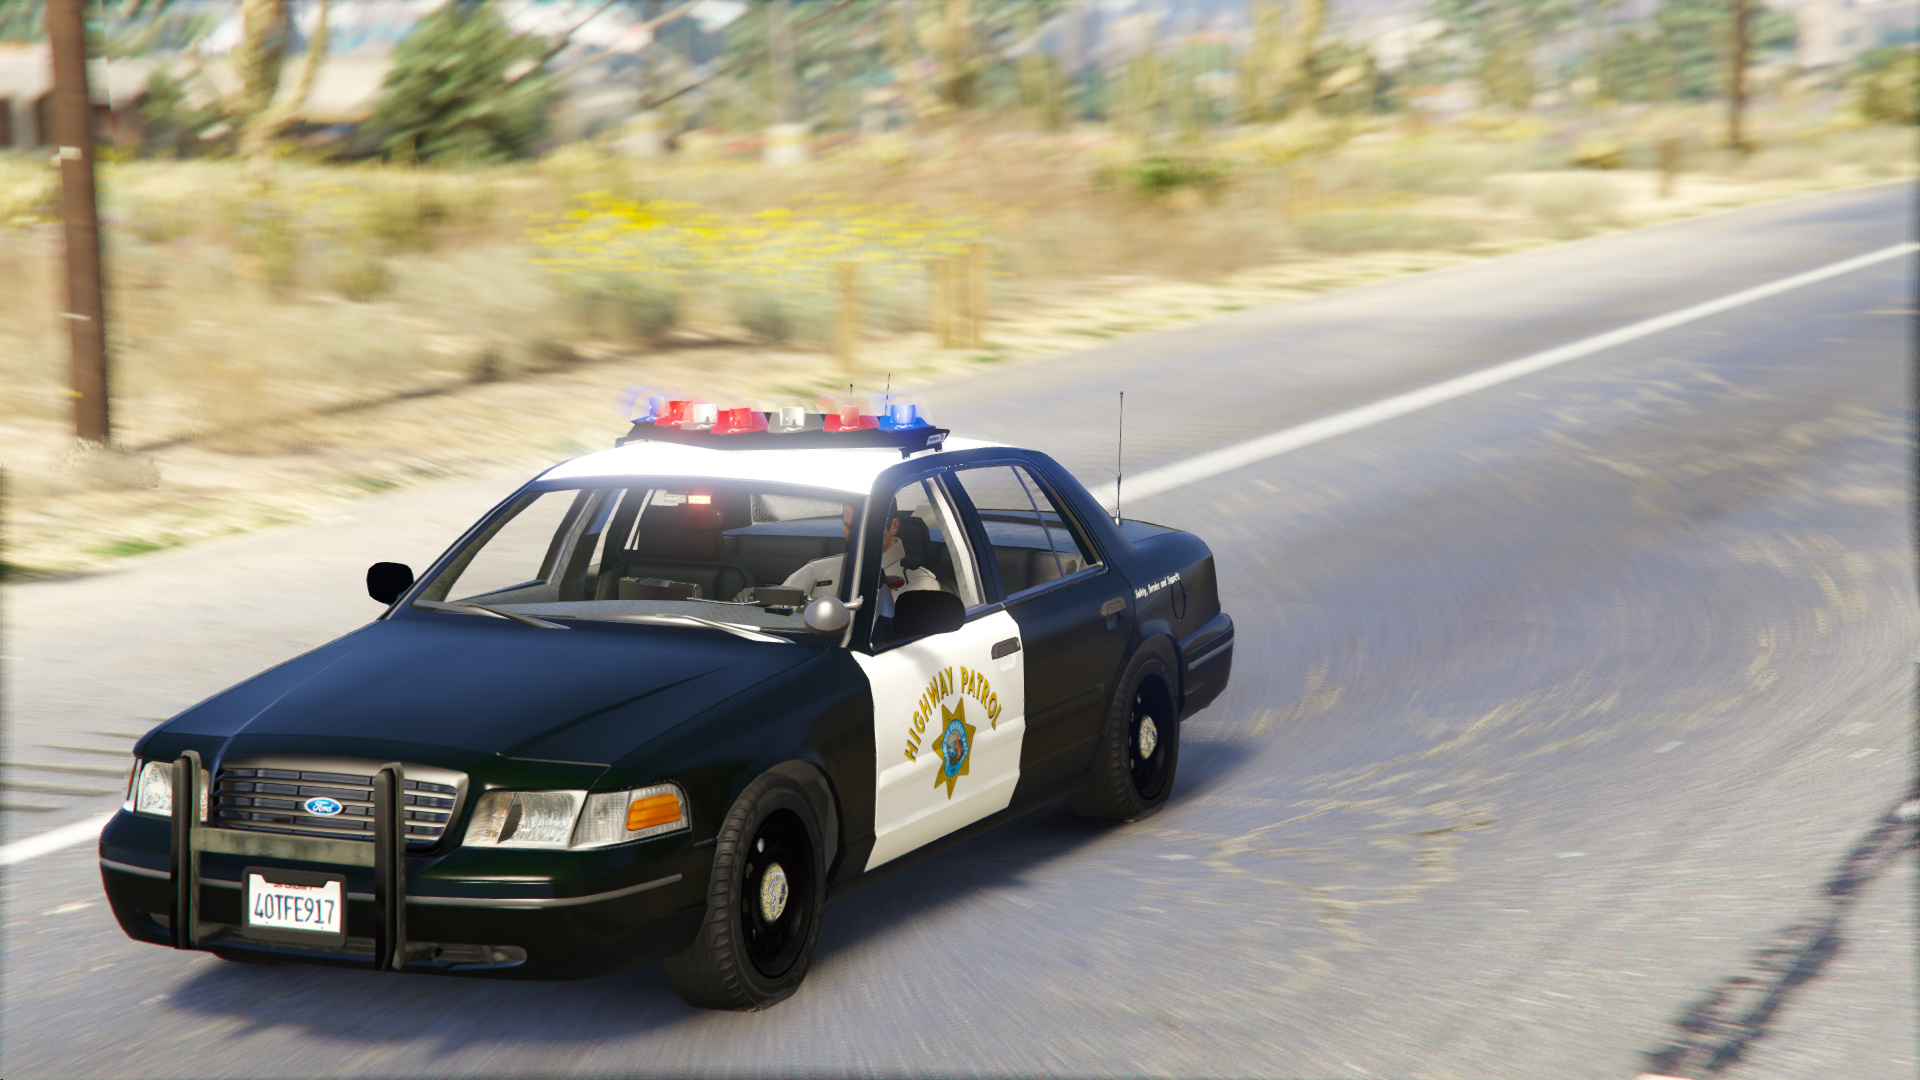 Chp cvpi with fs vector lightbar gta5 mods 0b066c gta5 2015 09 10 13 39 10 591 aloadofball Choice Image